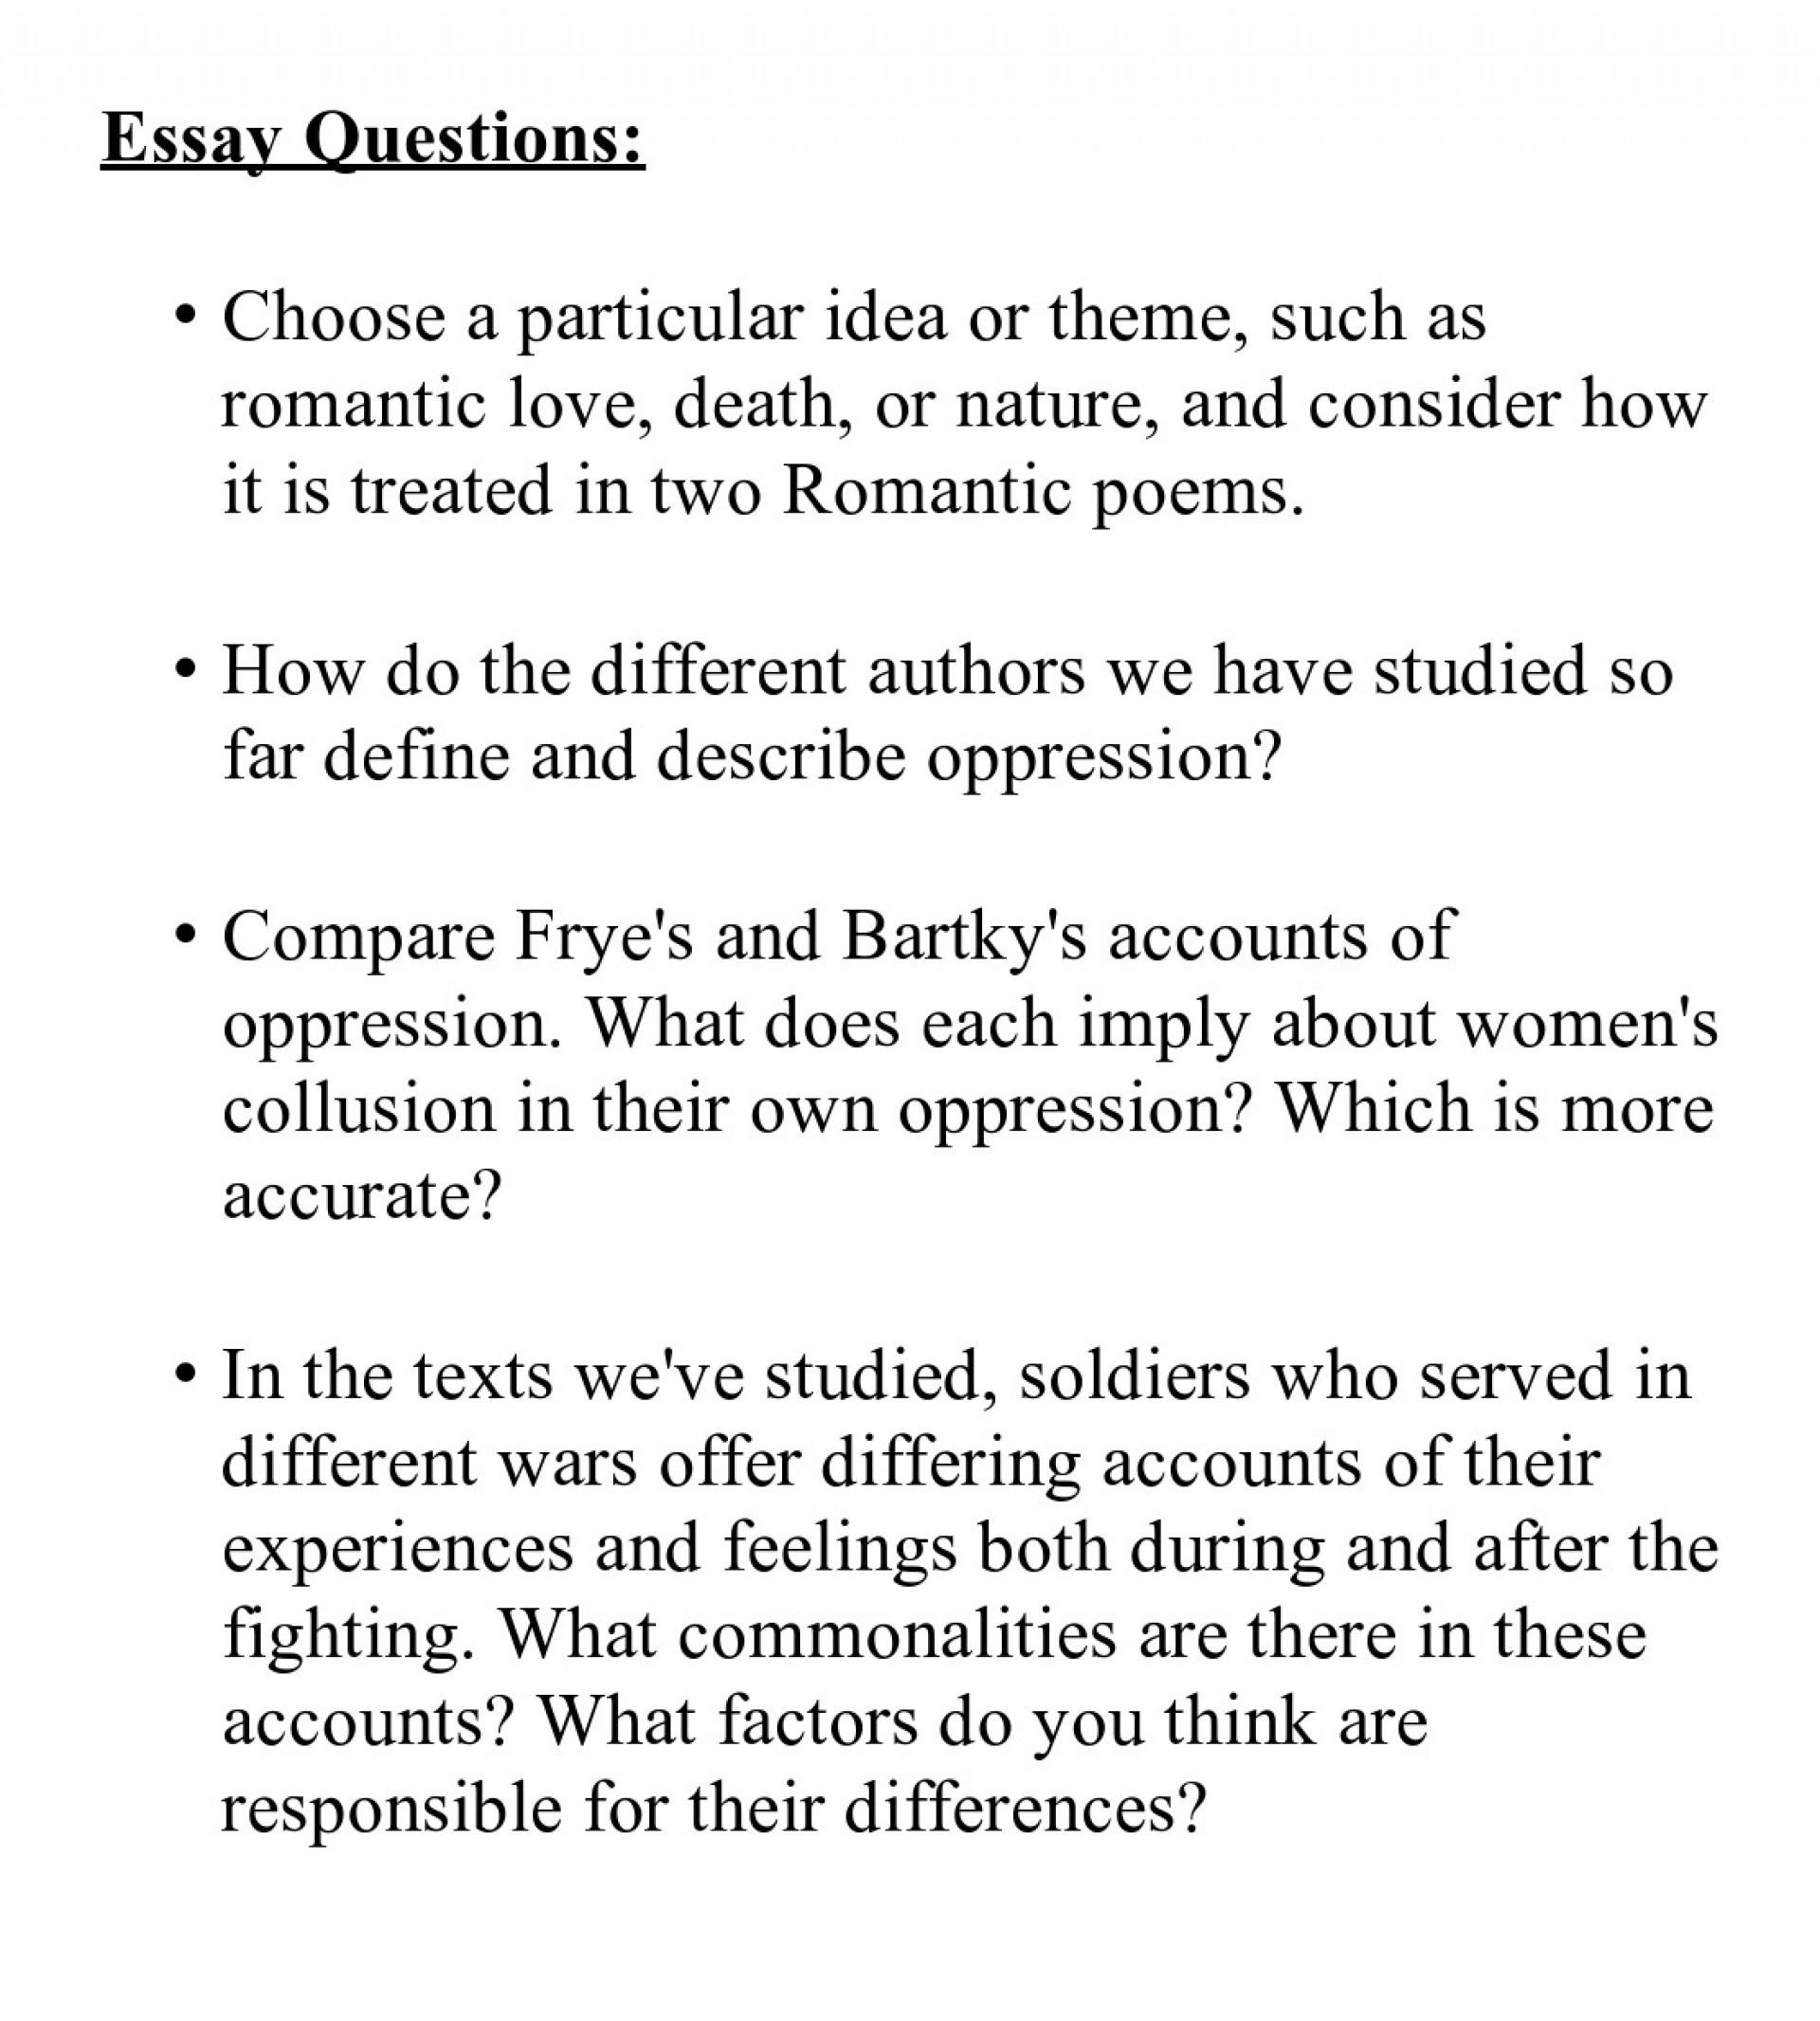 007 Essay Example Prompts Questions Best Narrative College Topics For Lord Of The Flies Creative Writing 1920